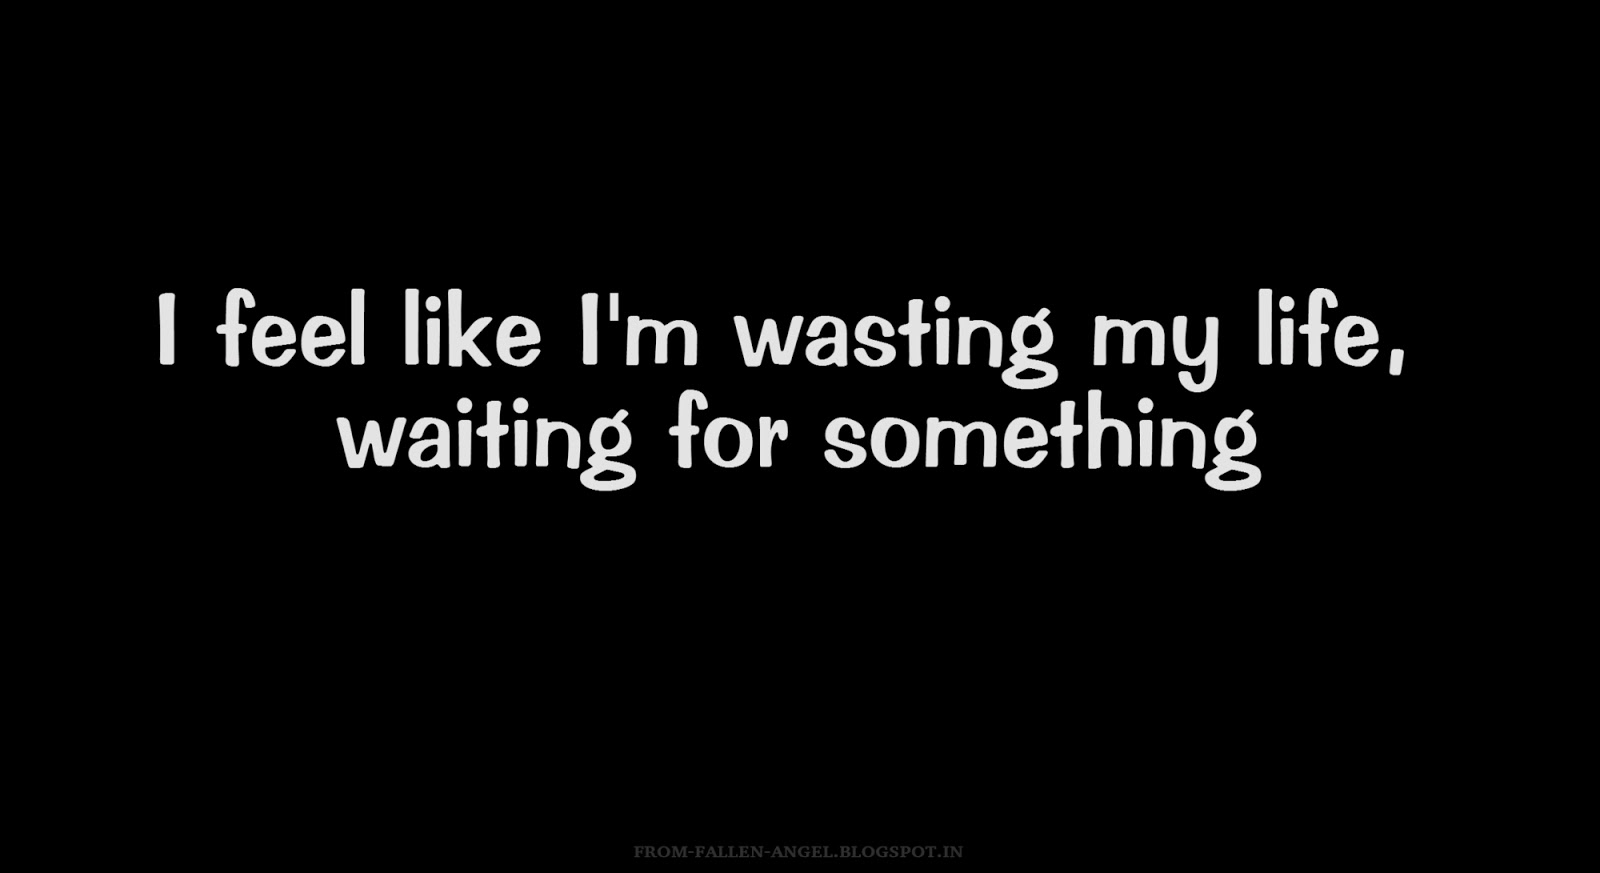 I feel like I'm wasting my life, waiting for something